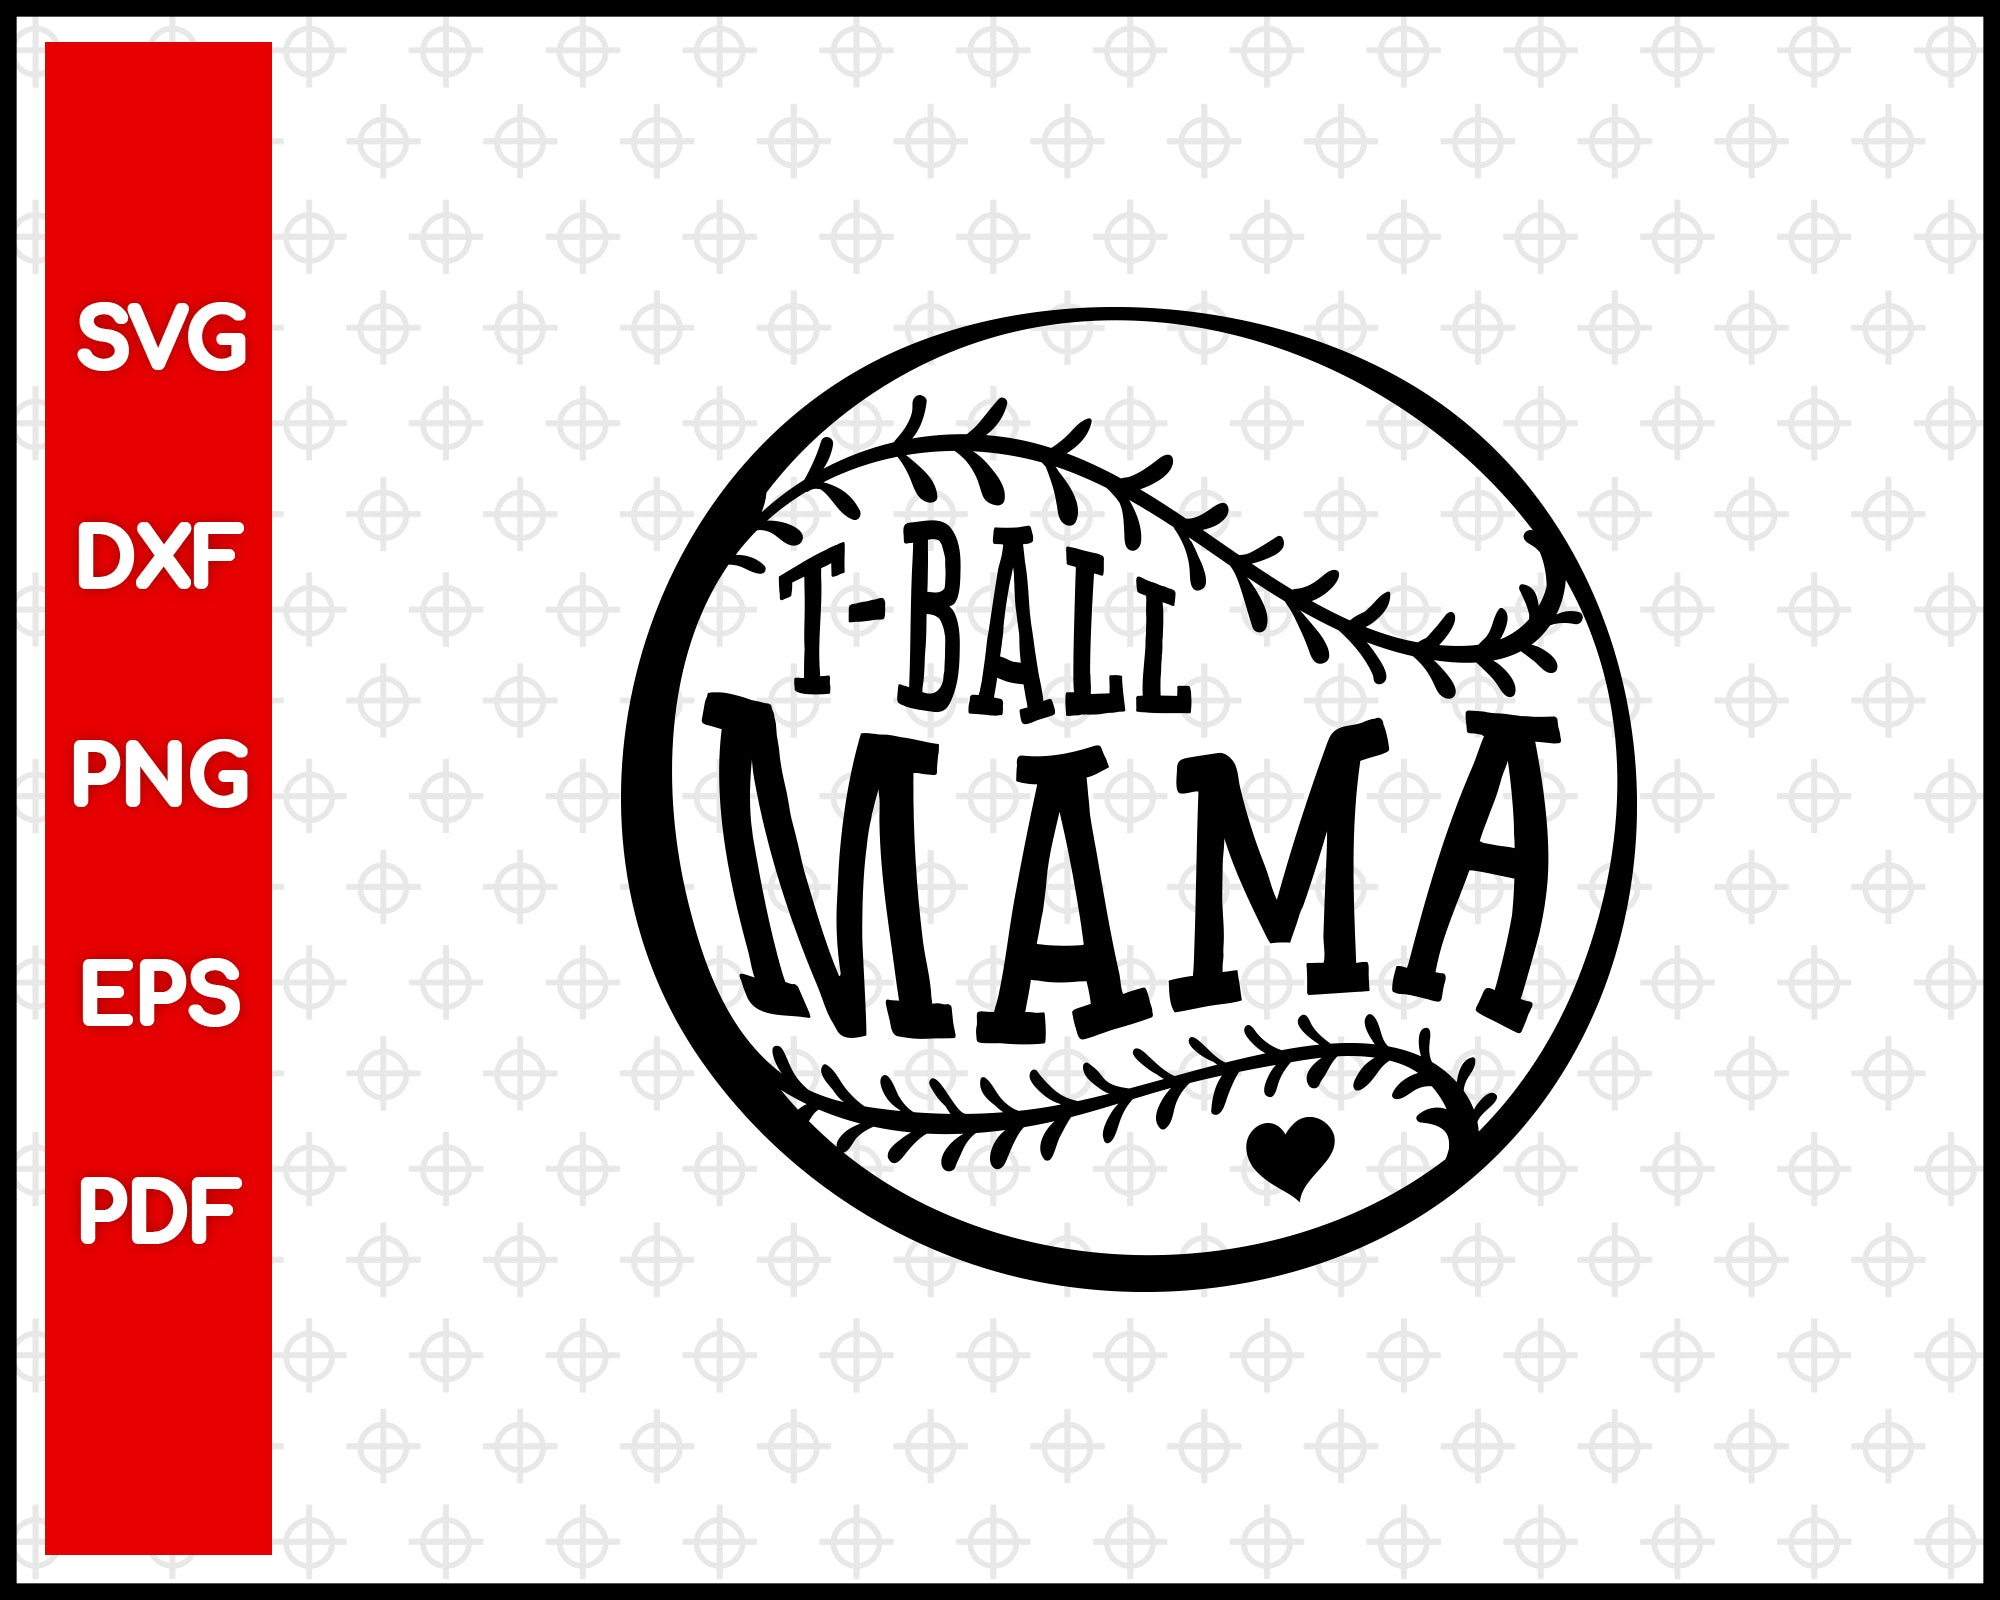 T-ball Mama Cut File For Cricut svg, dxf, png, eps, pdf Silhouette Printable Files